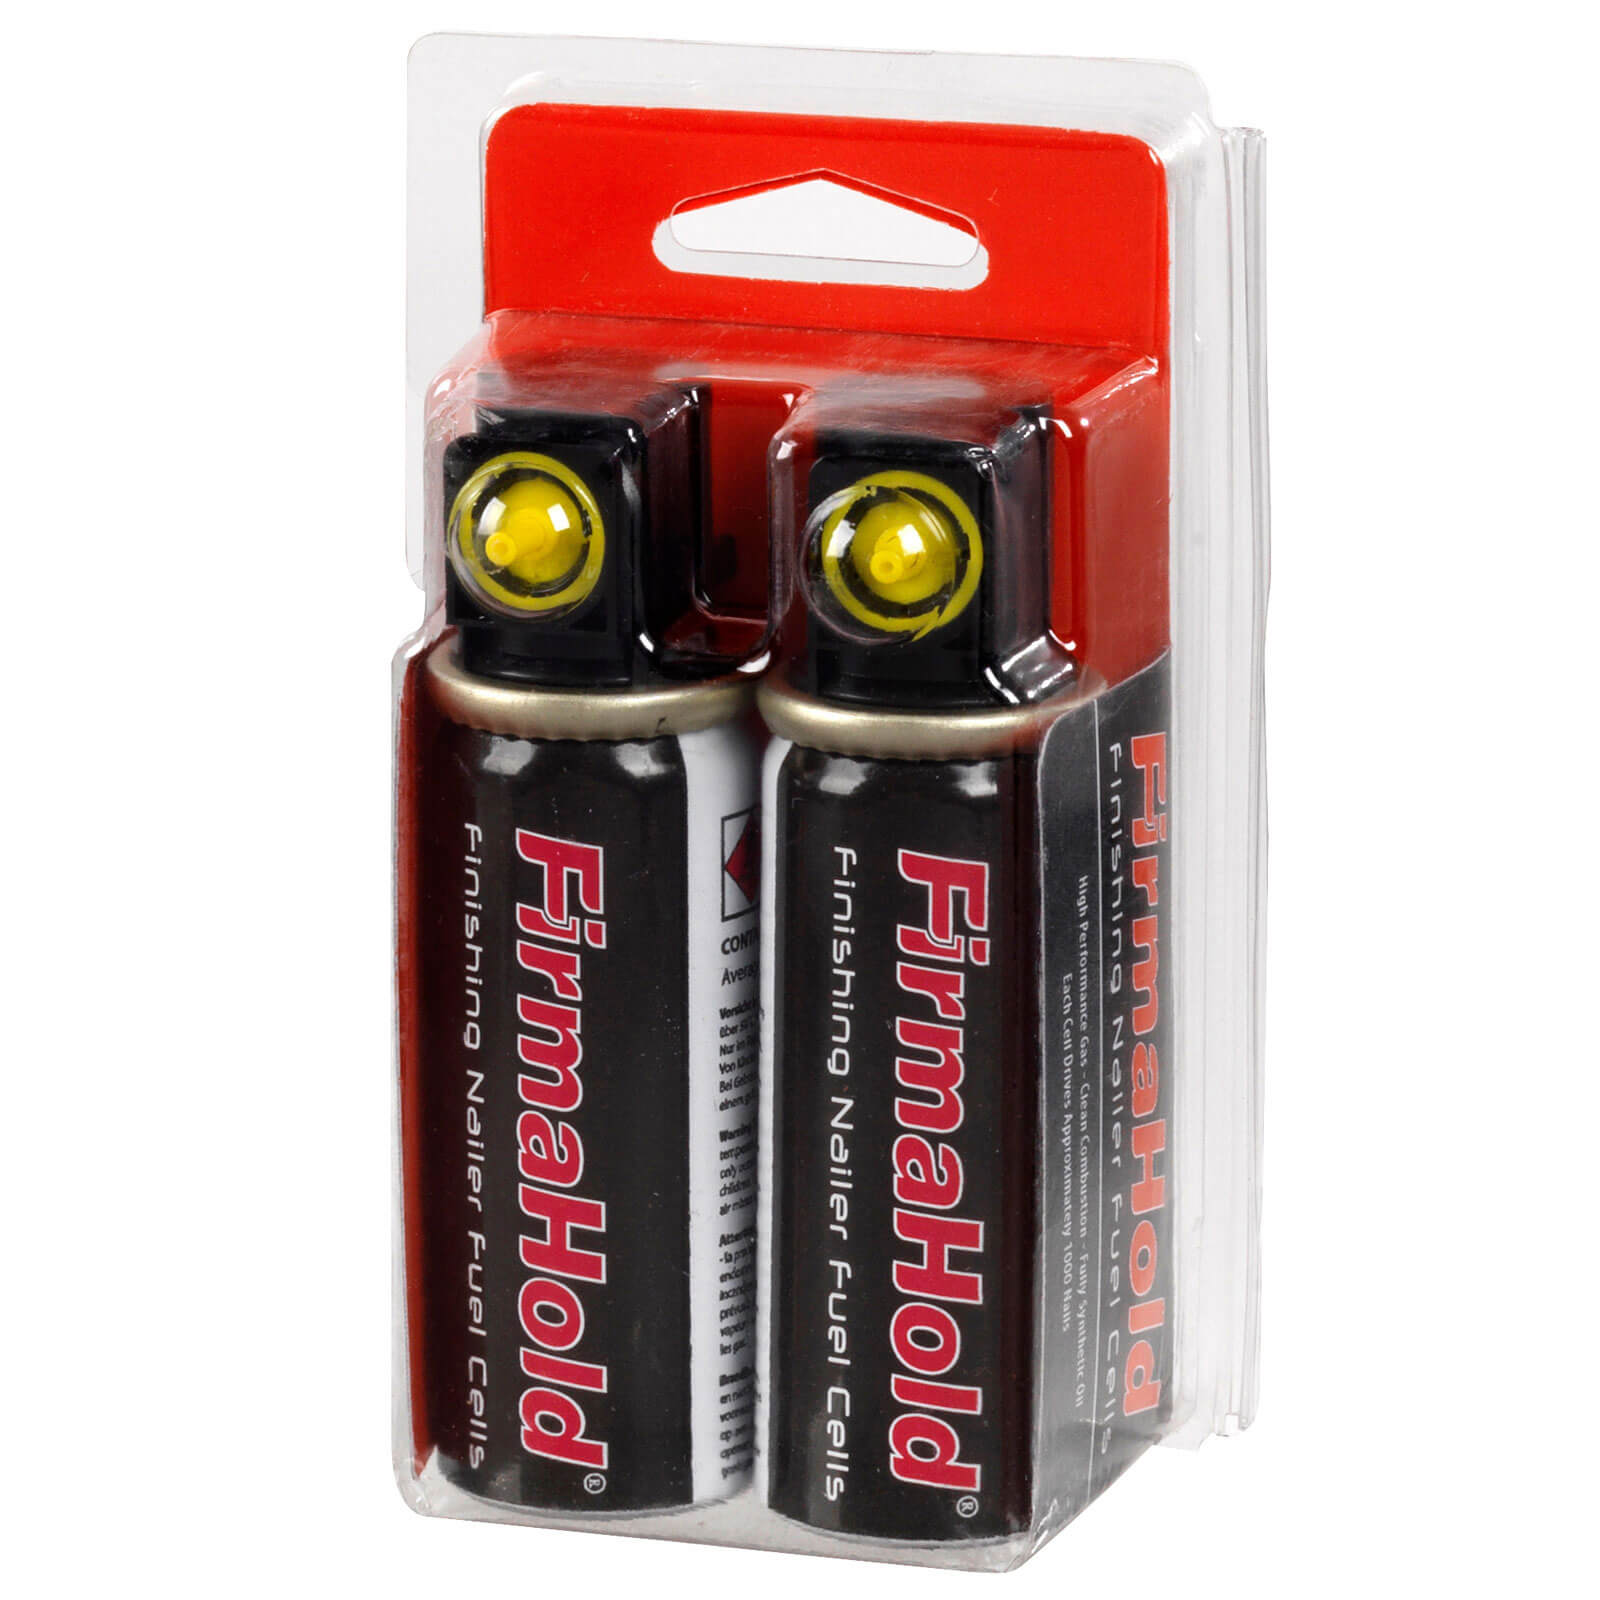 Image of Firmahold Second Fix Gas Nail Fuel Cell Pack of 2